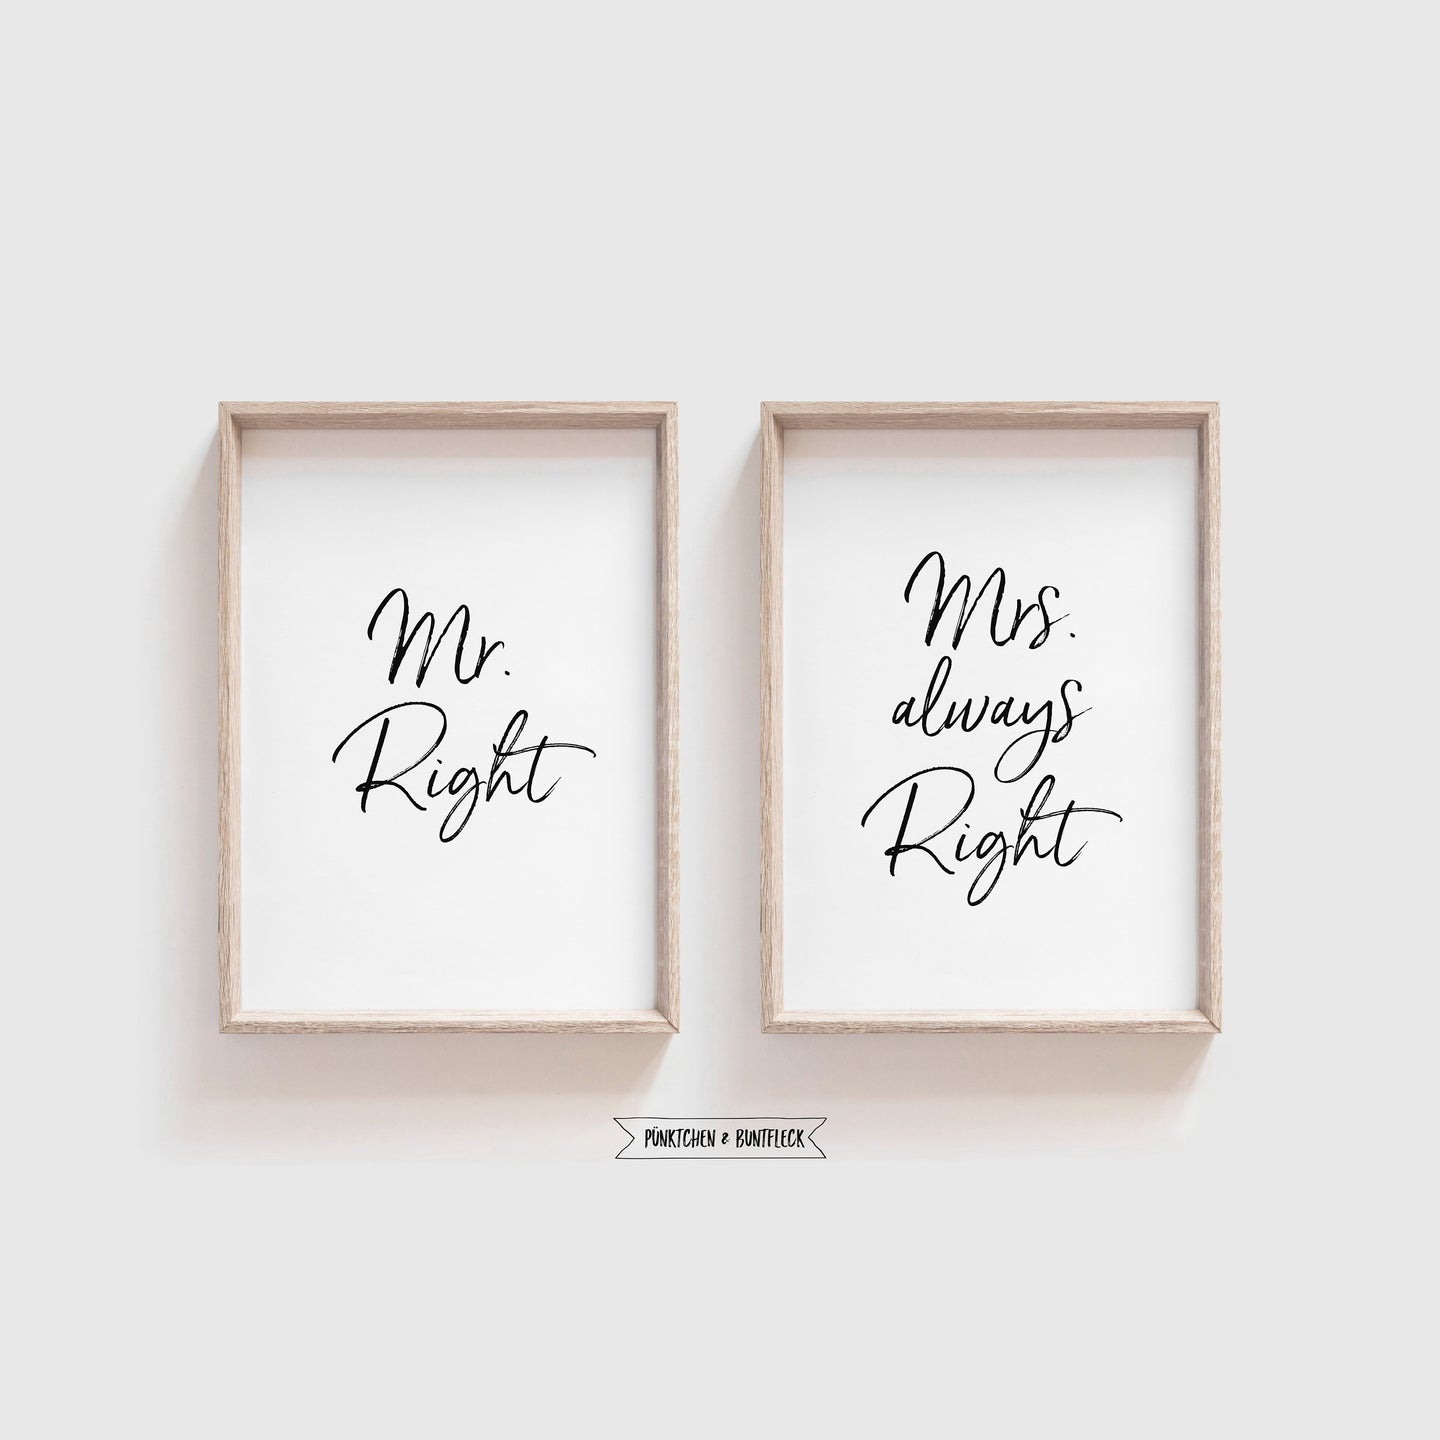 Kunstdruck/Poster 2er Set - Mr.&Mrs Right